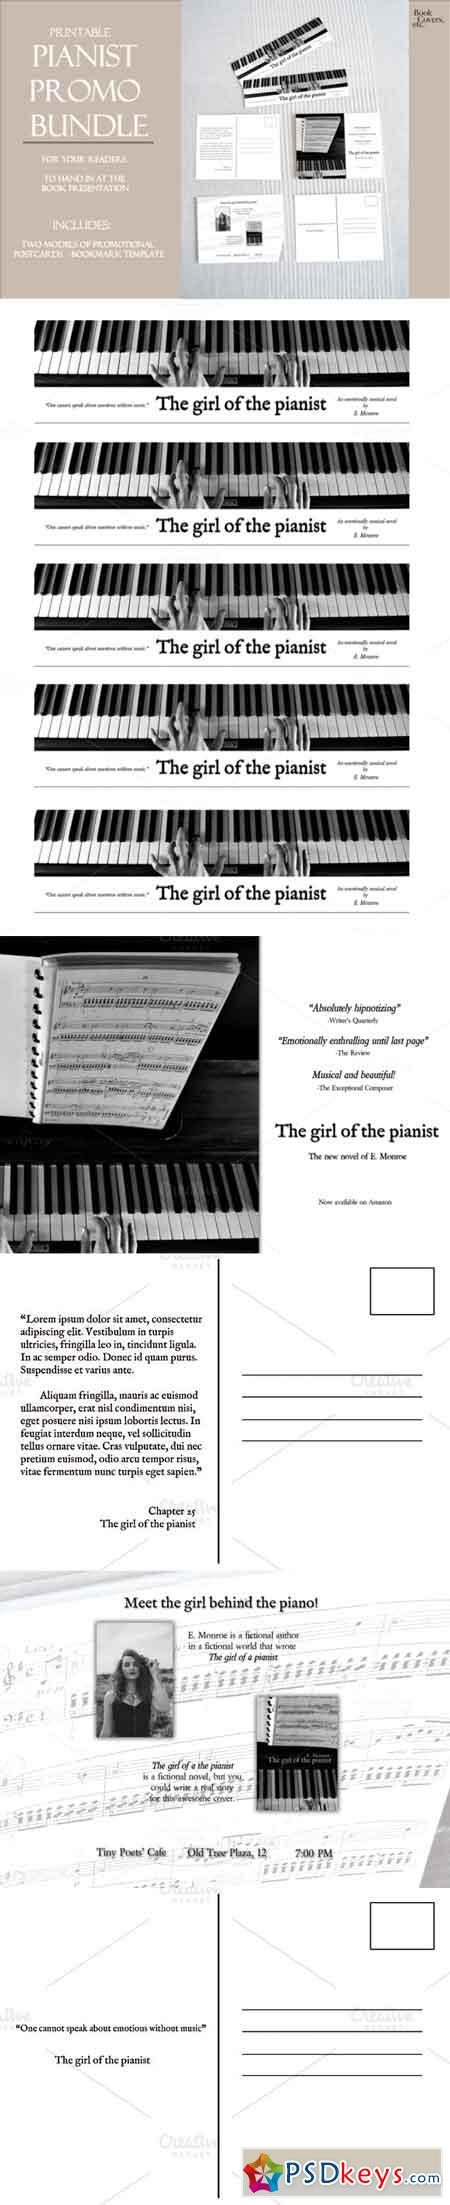 Pianist Promo Bundle 685567